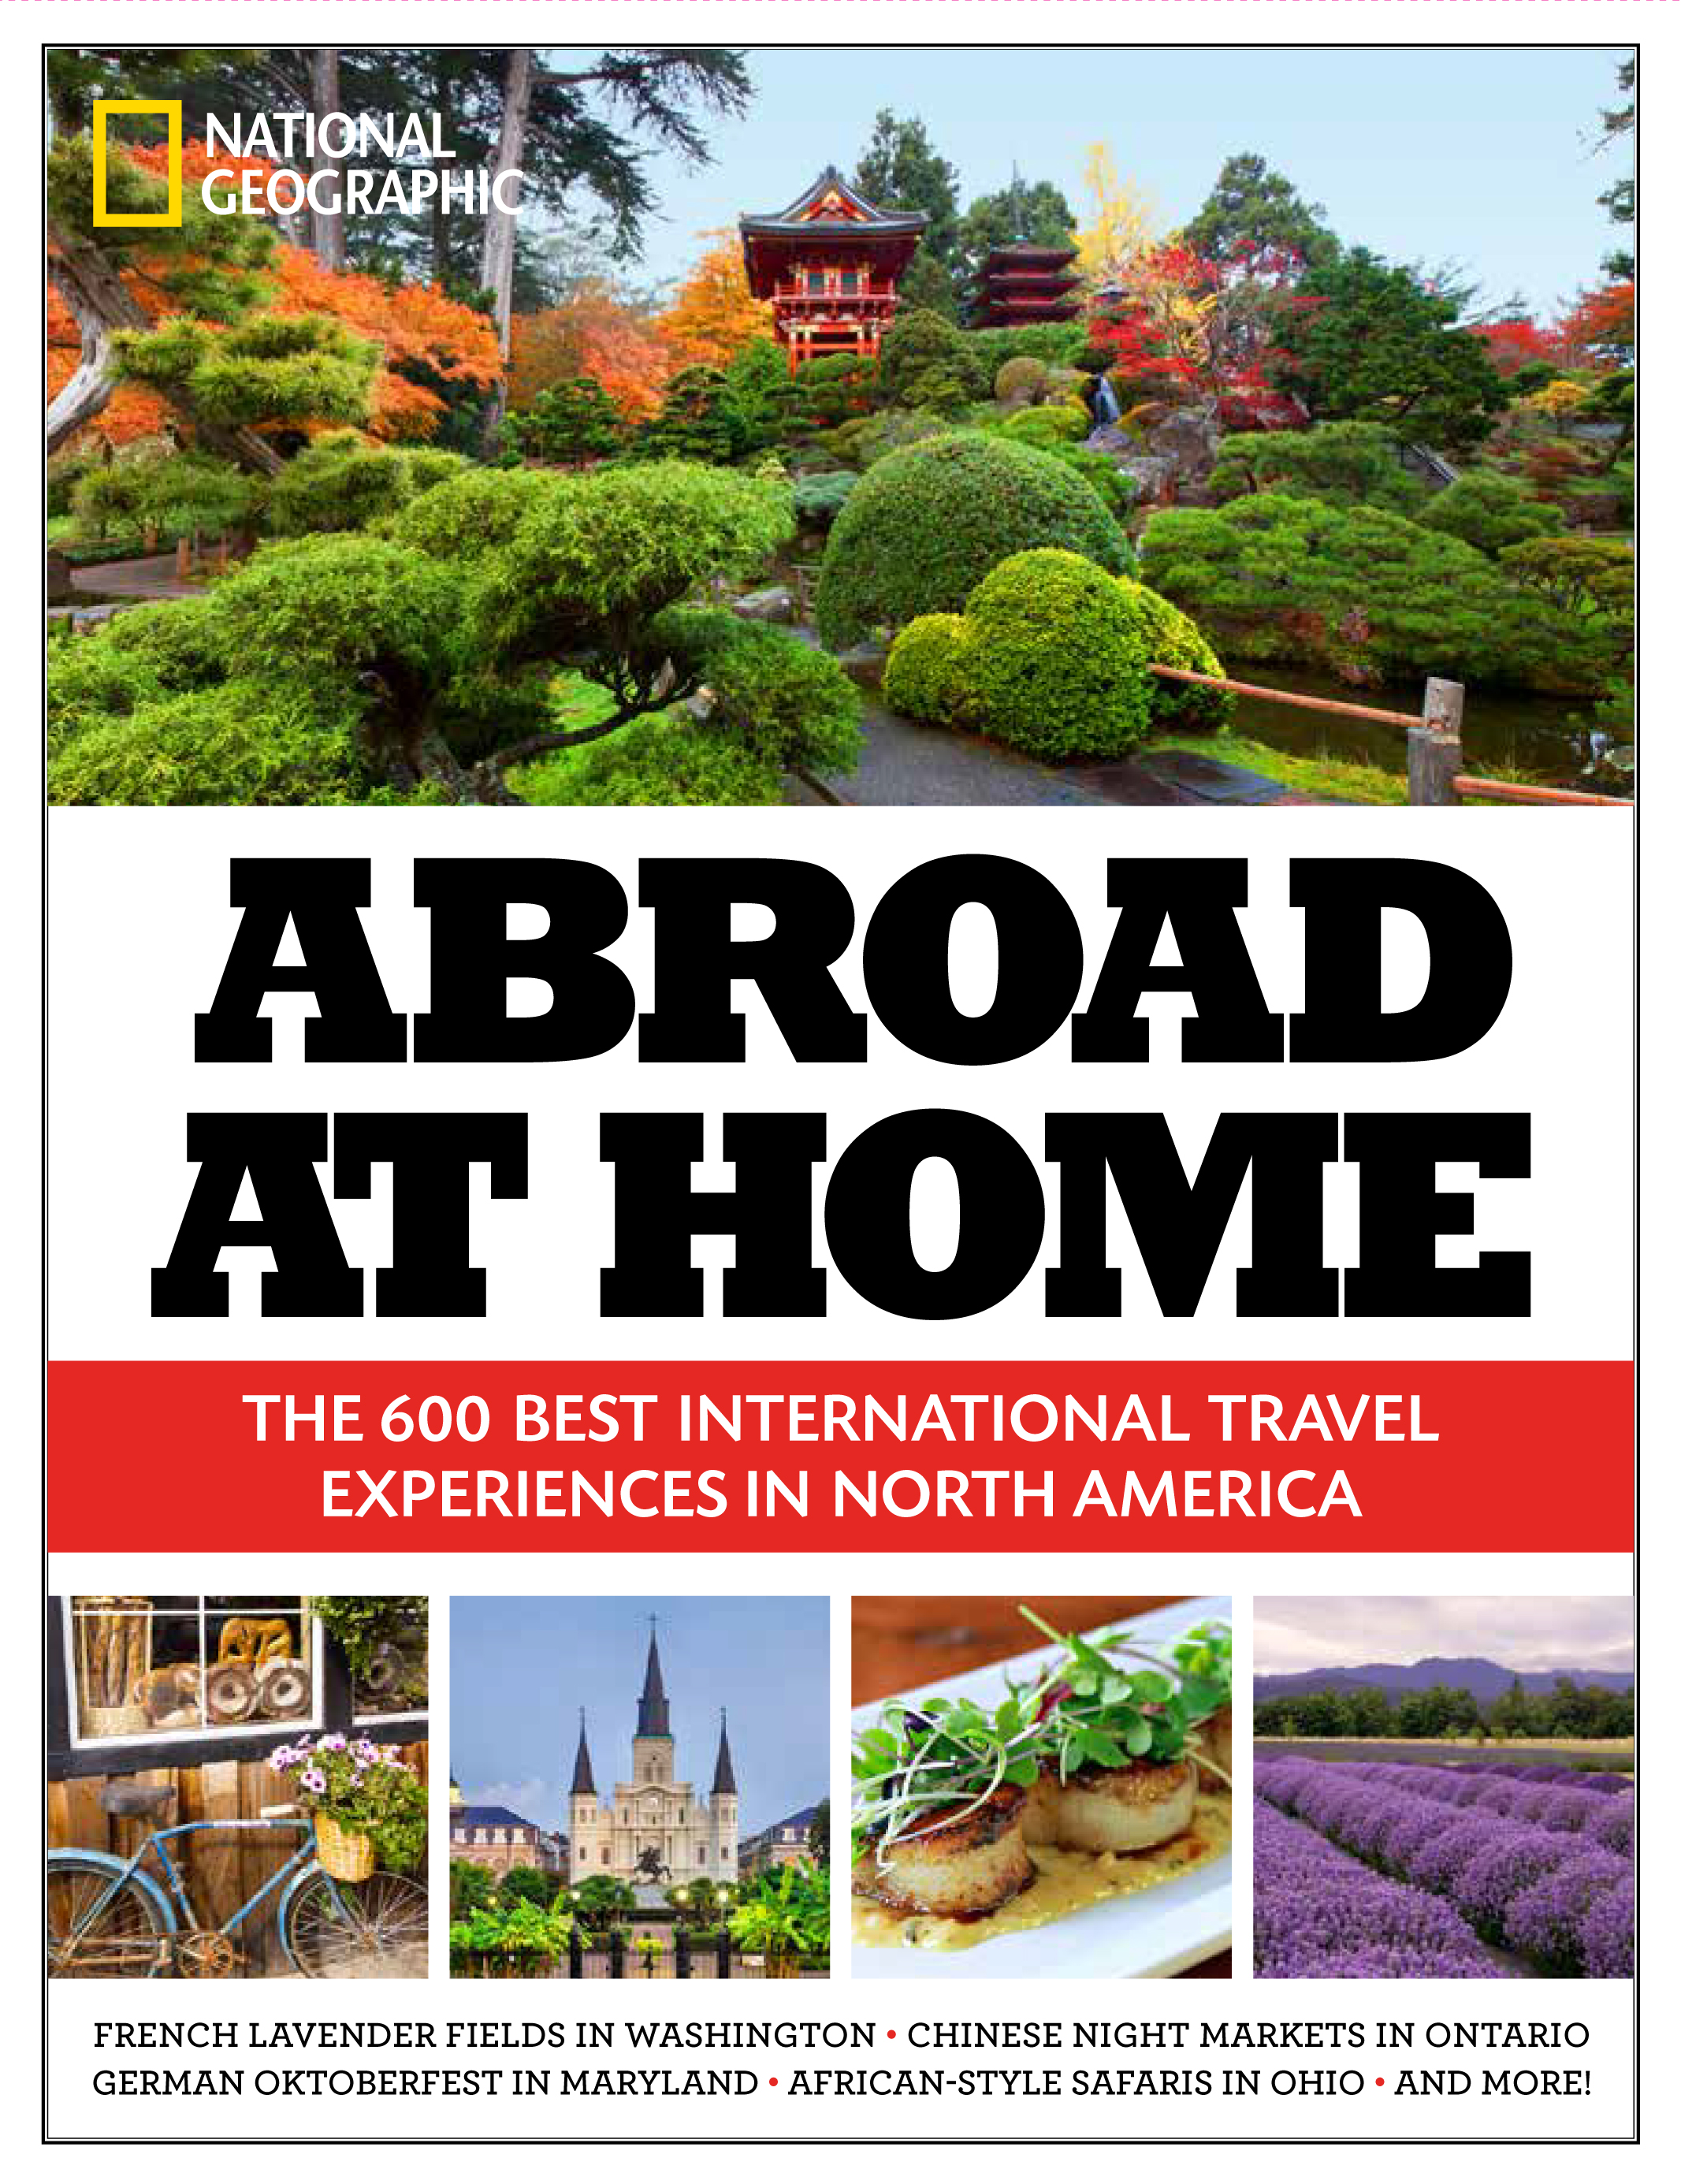 Abroad At Home_national Geographic_Cover_PRE_eg_v3-1 (4) (1)_FINAL COVER_Tenley Fohl Photography.jpg